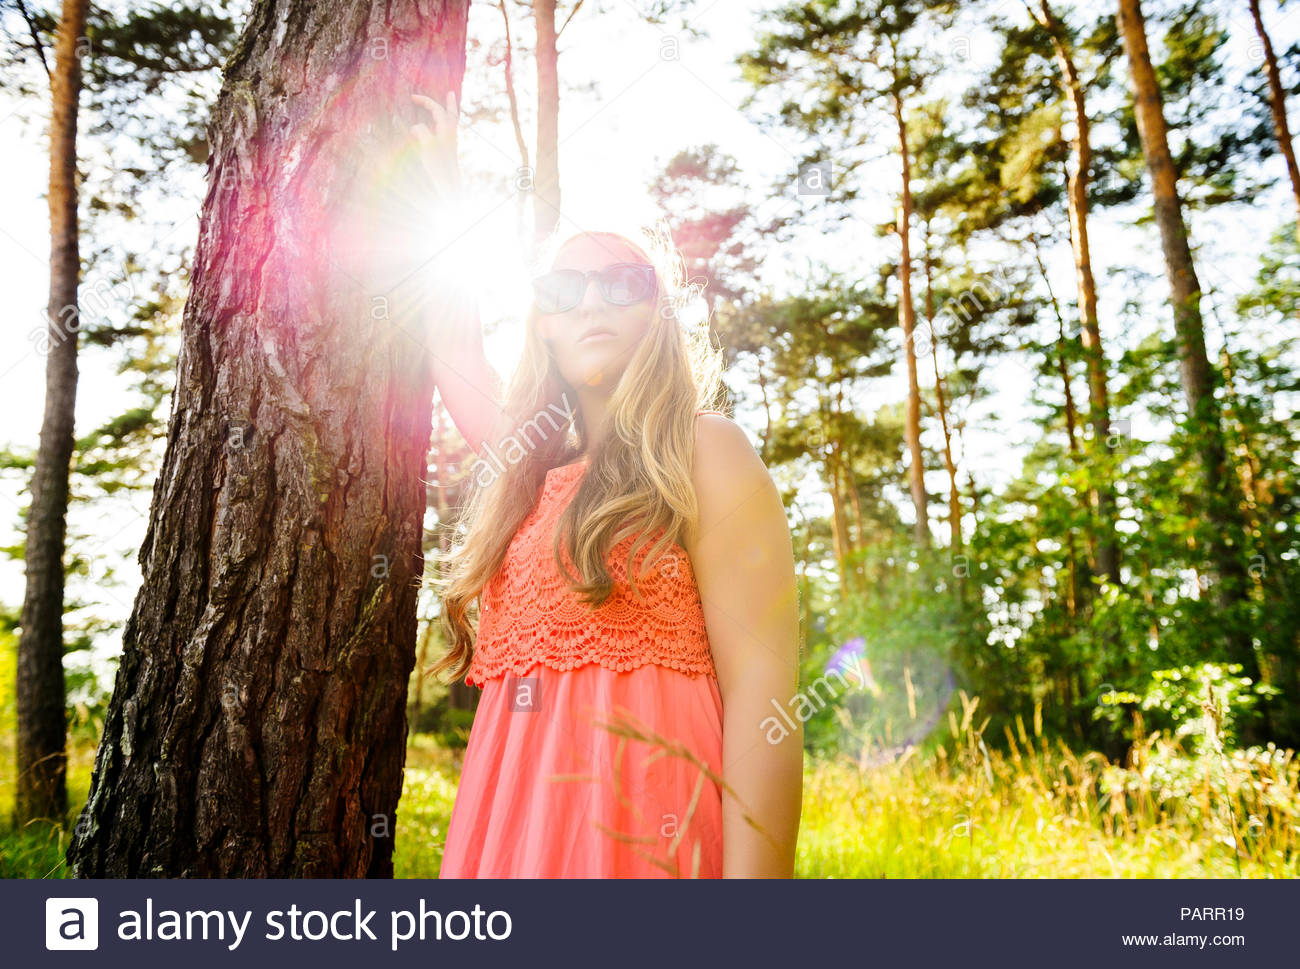 Portrait of young woman standing against tree trunk. - Stock Image